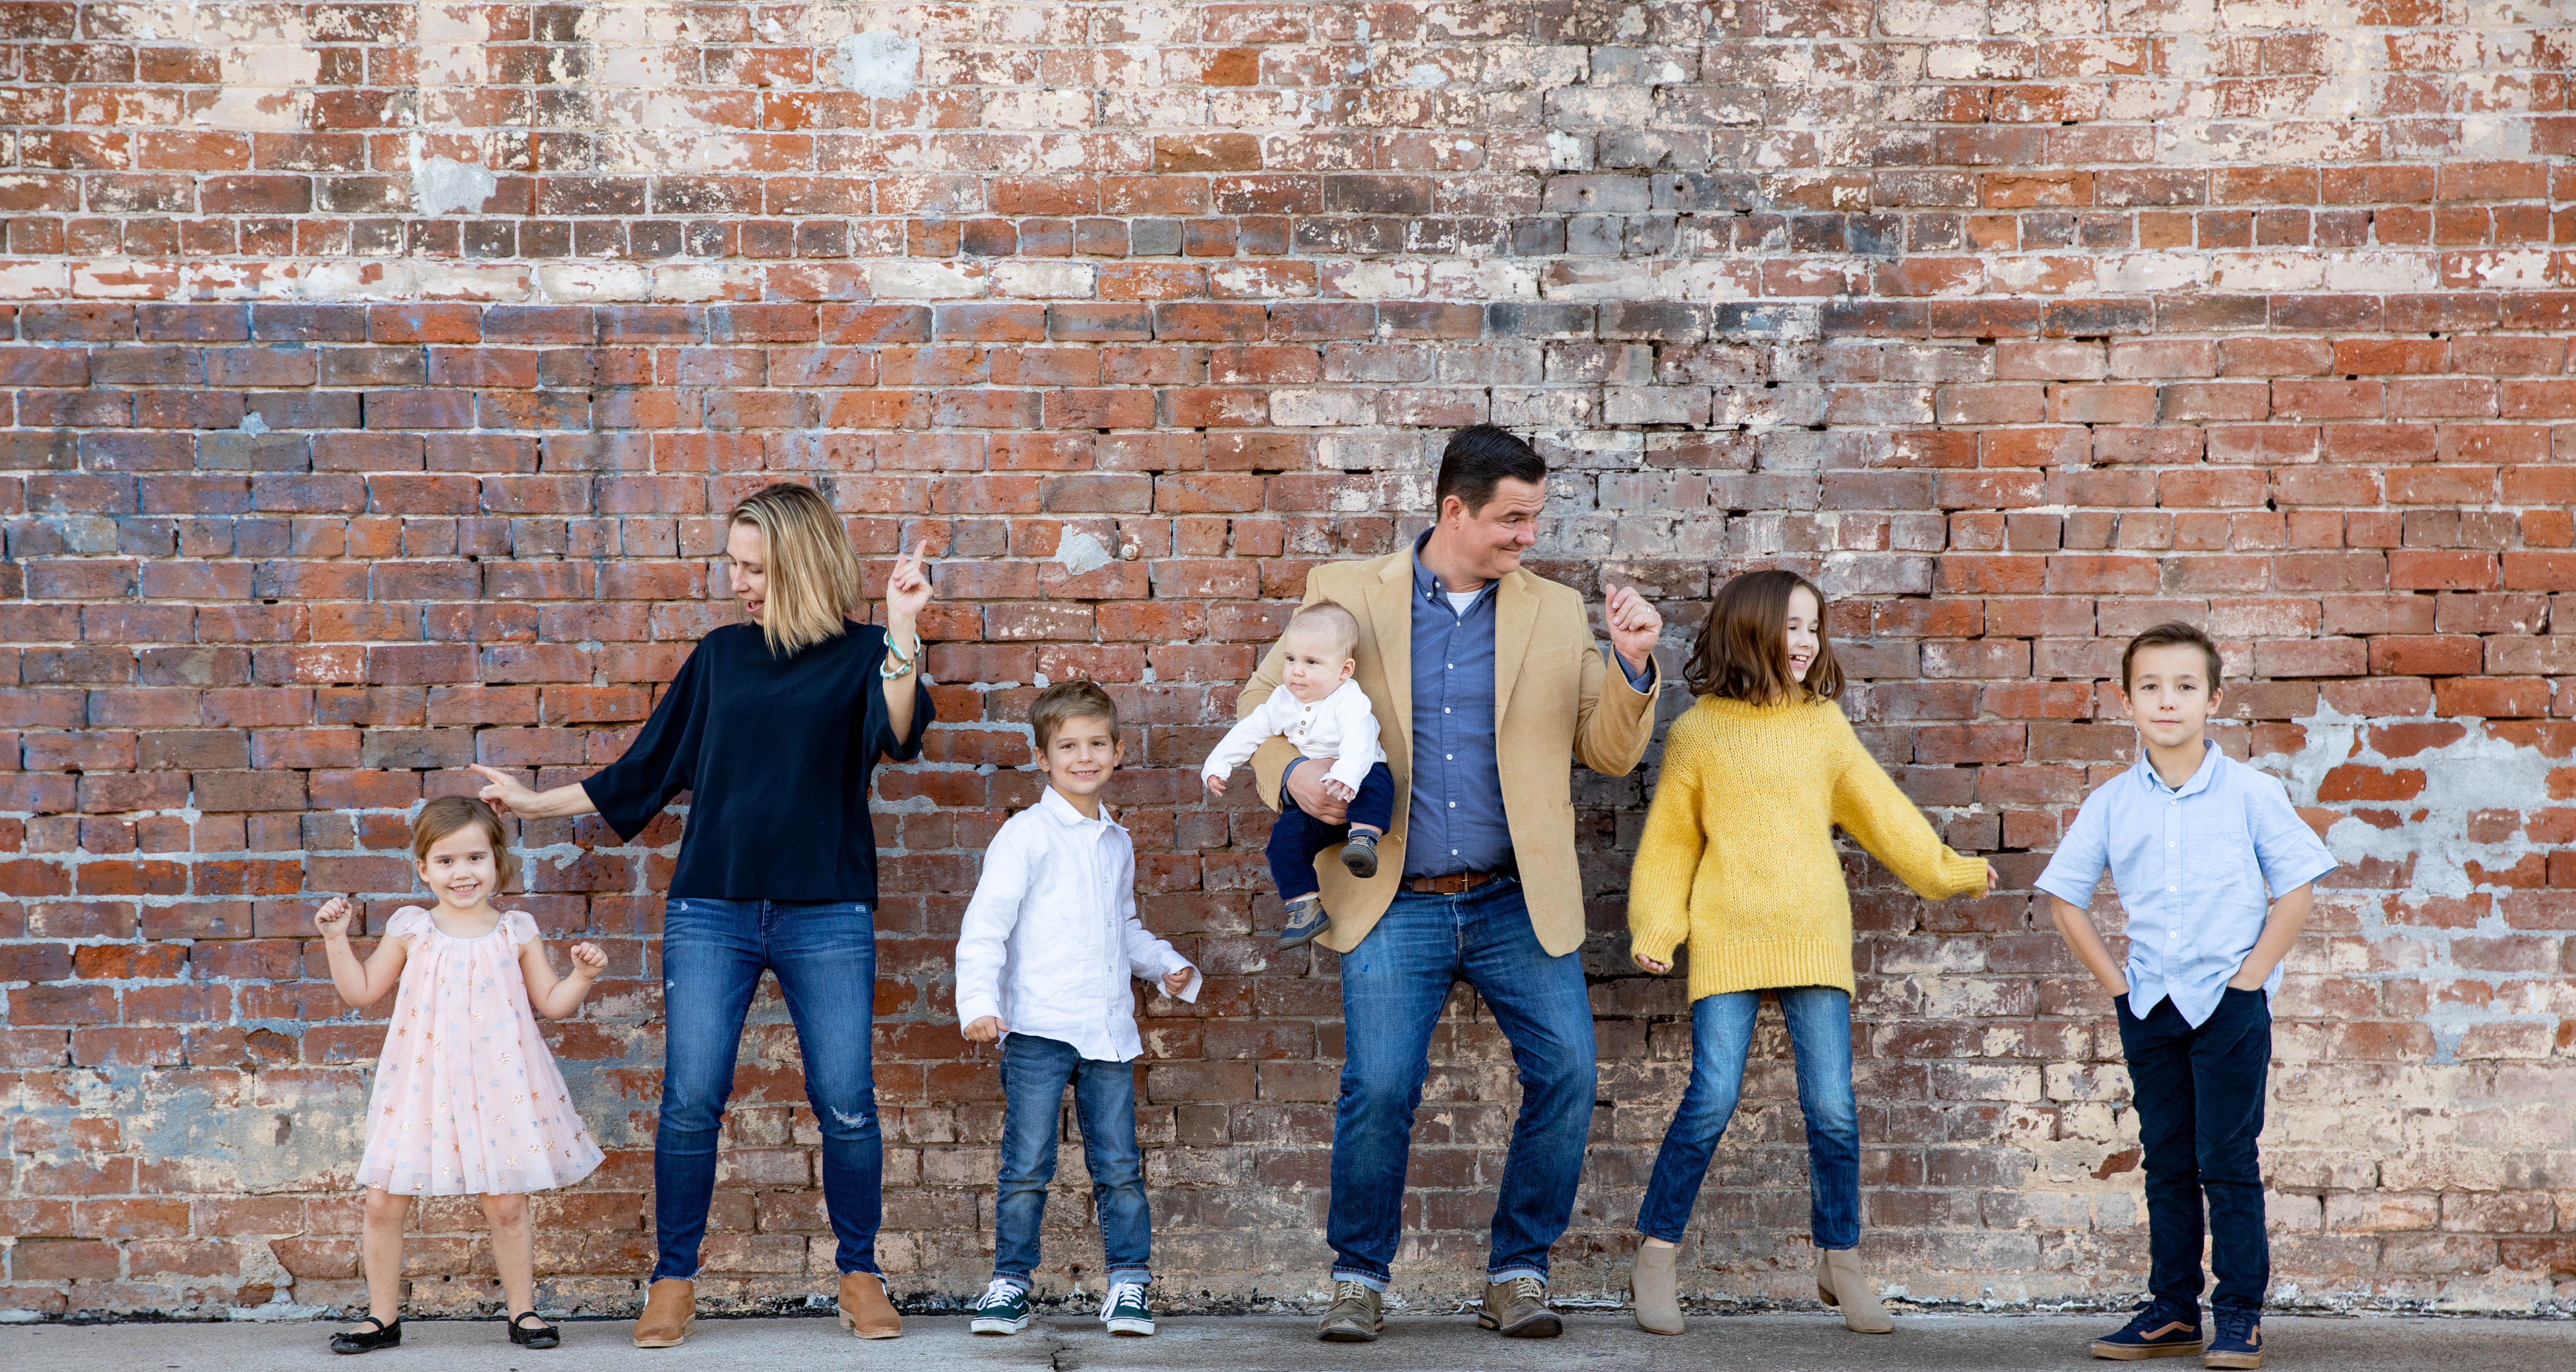 large family of five kids stands and dances with parents in front of brick wall kids children family picture aribella photography